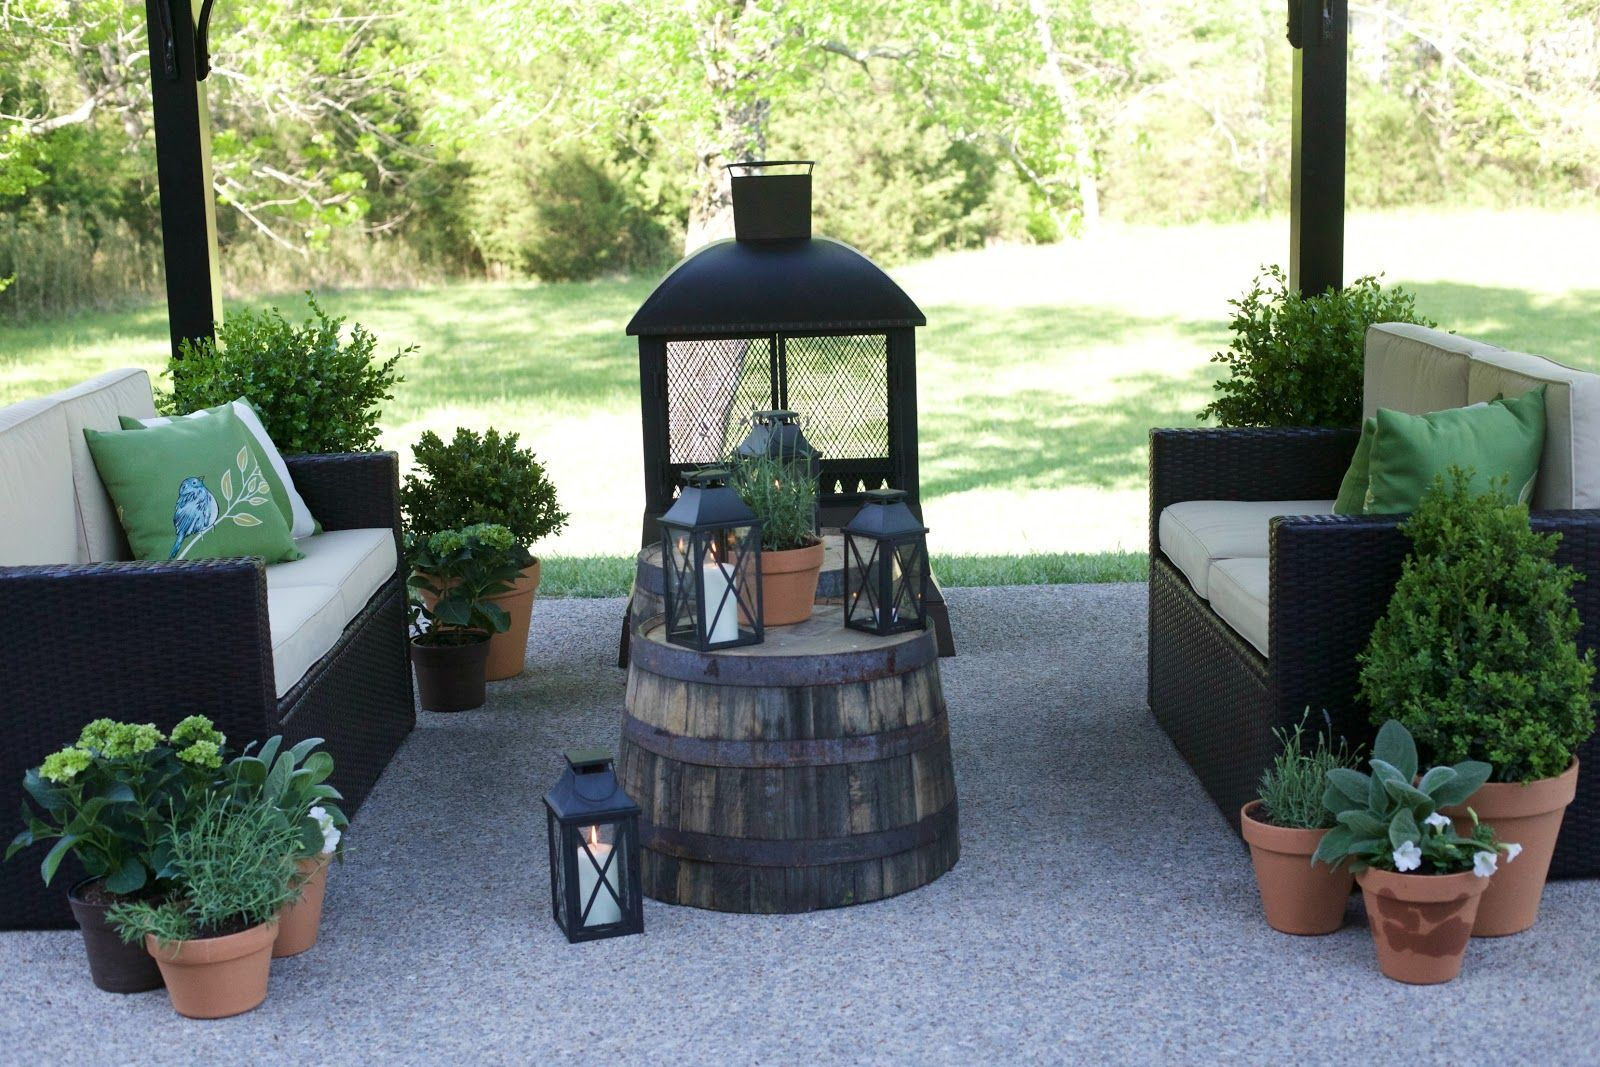 Lowe's Spring Makeover Reveal | Diy garden furniture ... on Lowes Outdoor Living id=30907